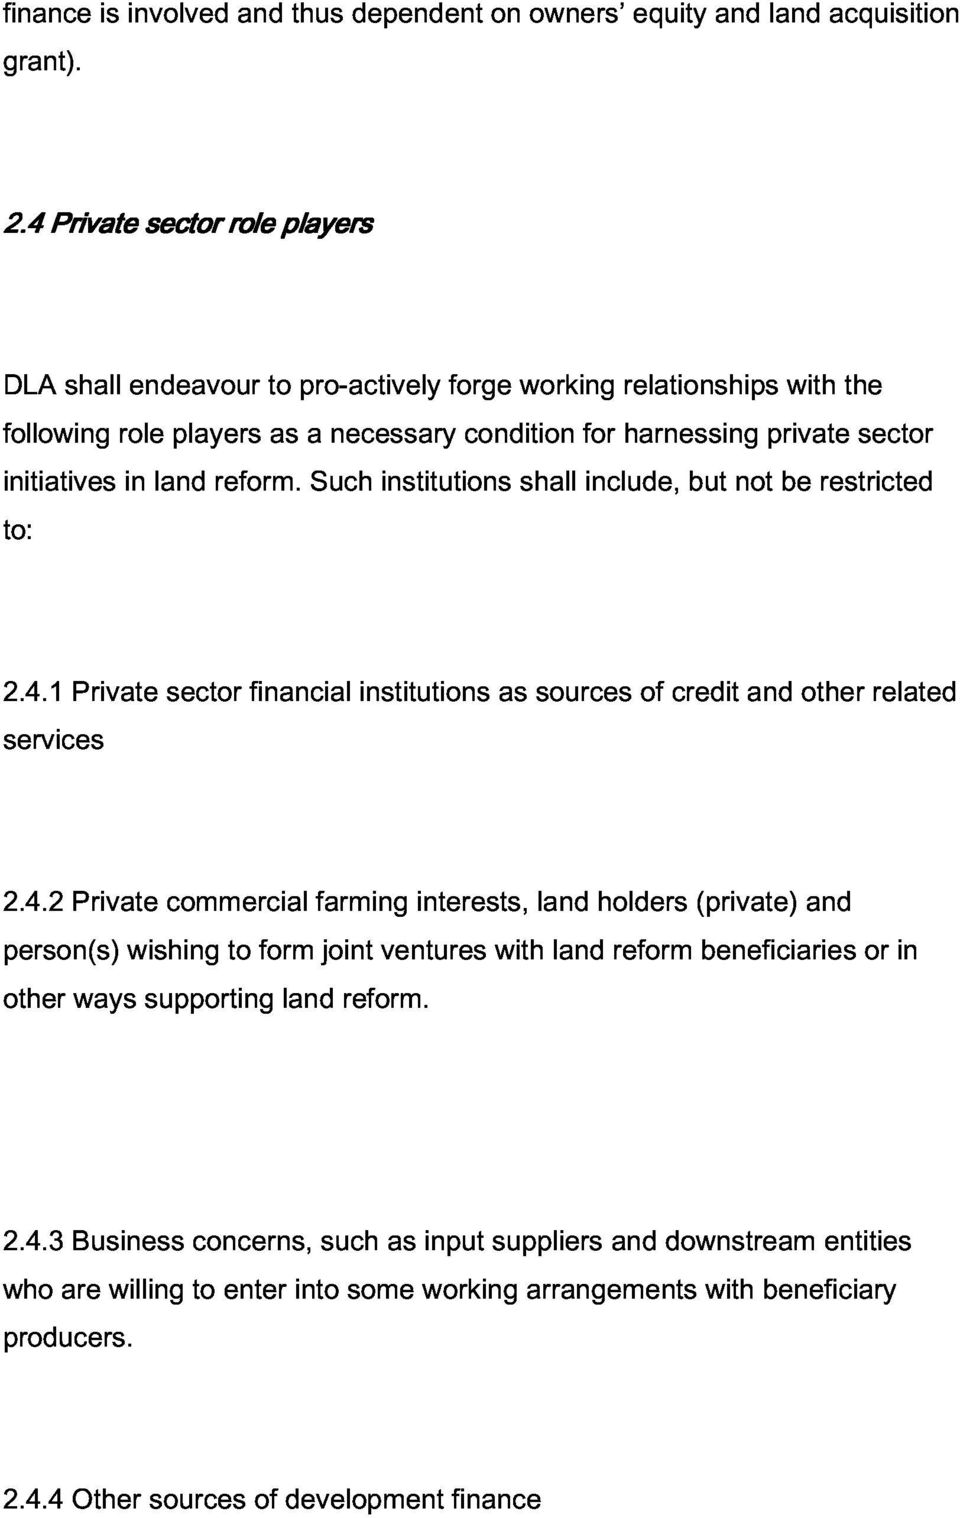 reform. Such institutions shall include, but not be restricted sector 2.4.1 services Private sector financial institutions as sources of credit and other related person(s) other 2.4.2 Private ways wishing supporting commercial to form land farming joint reform.